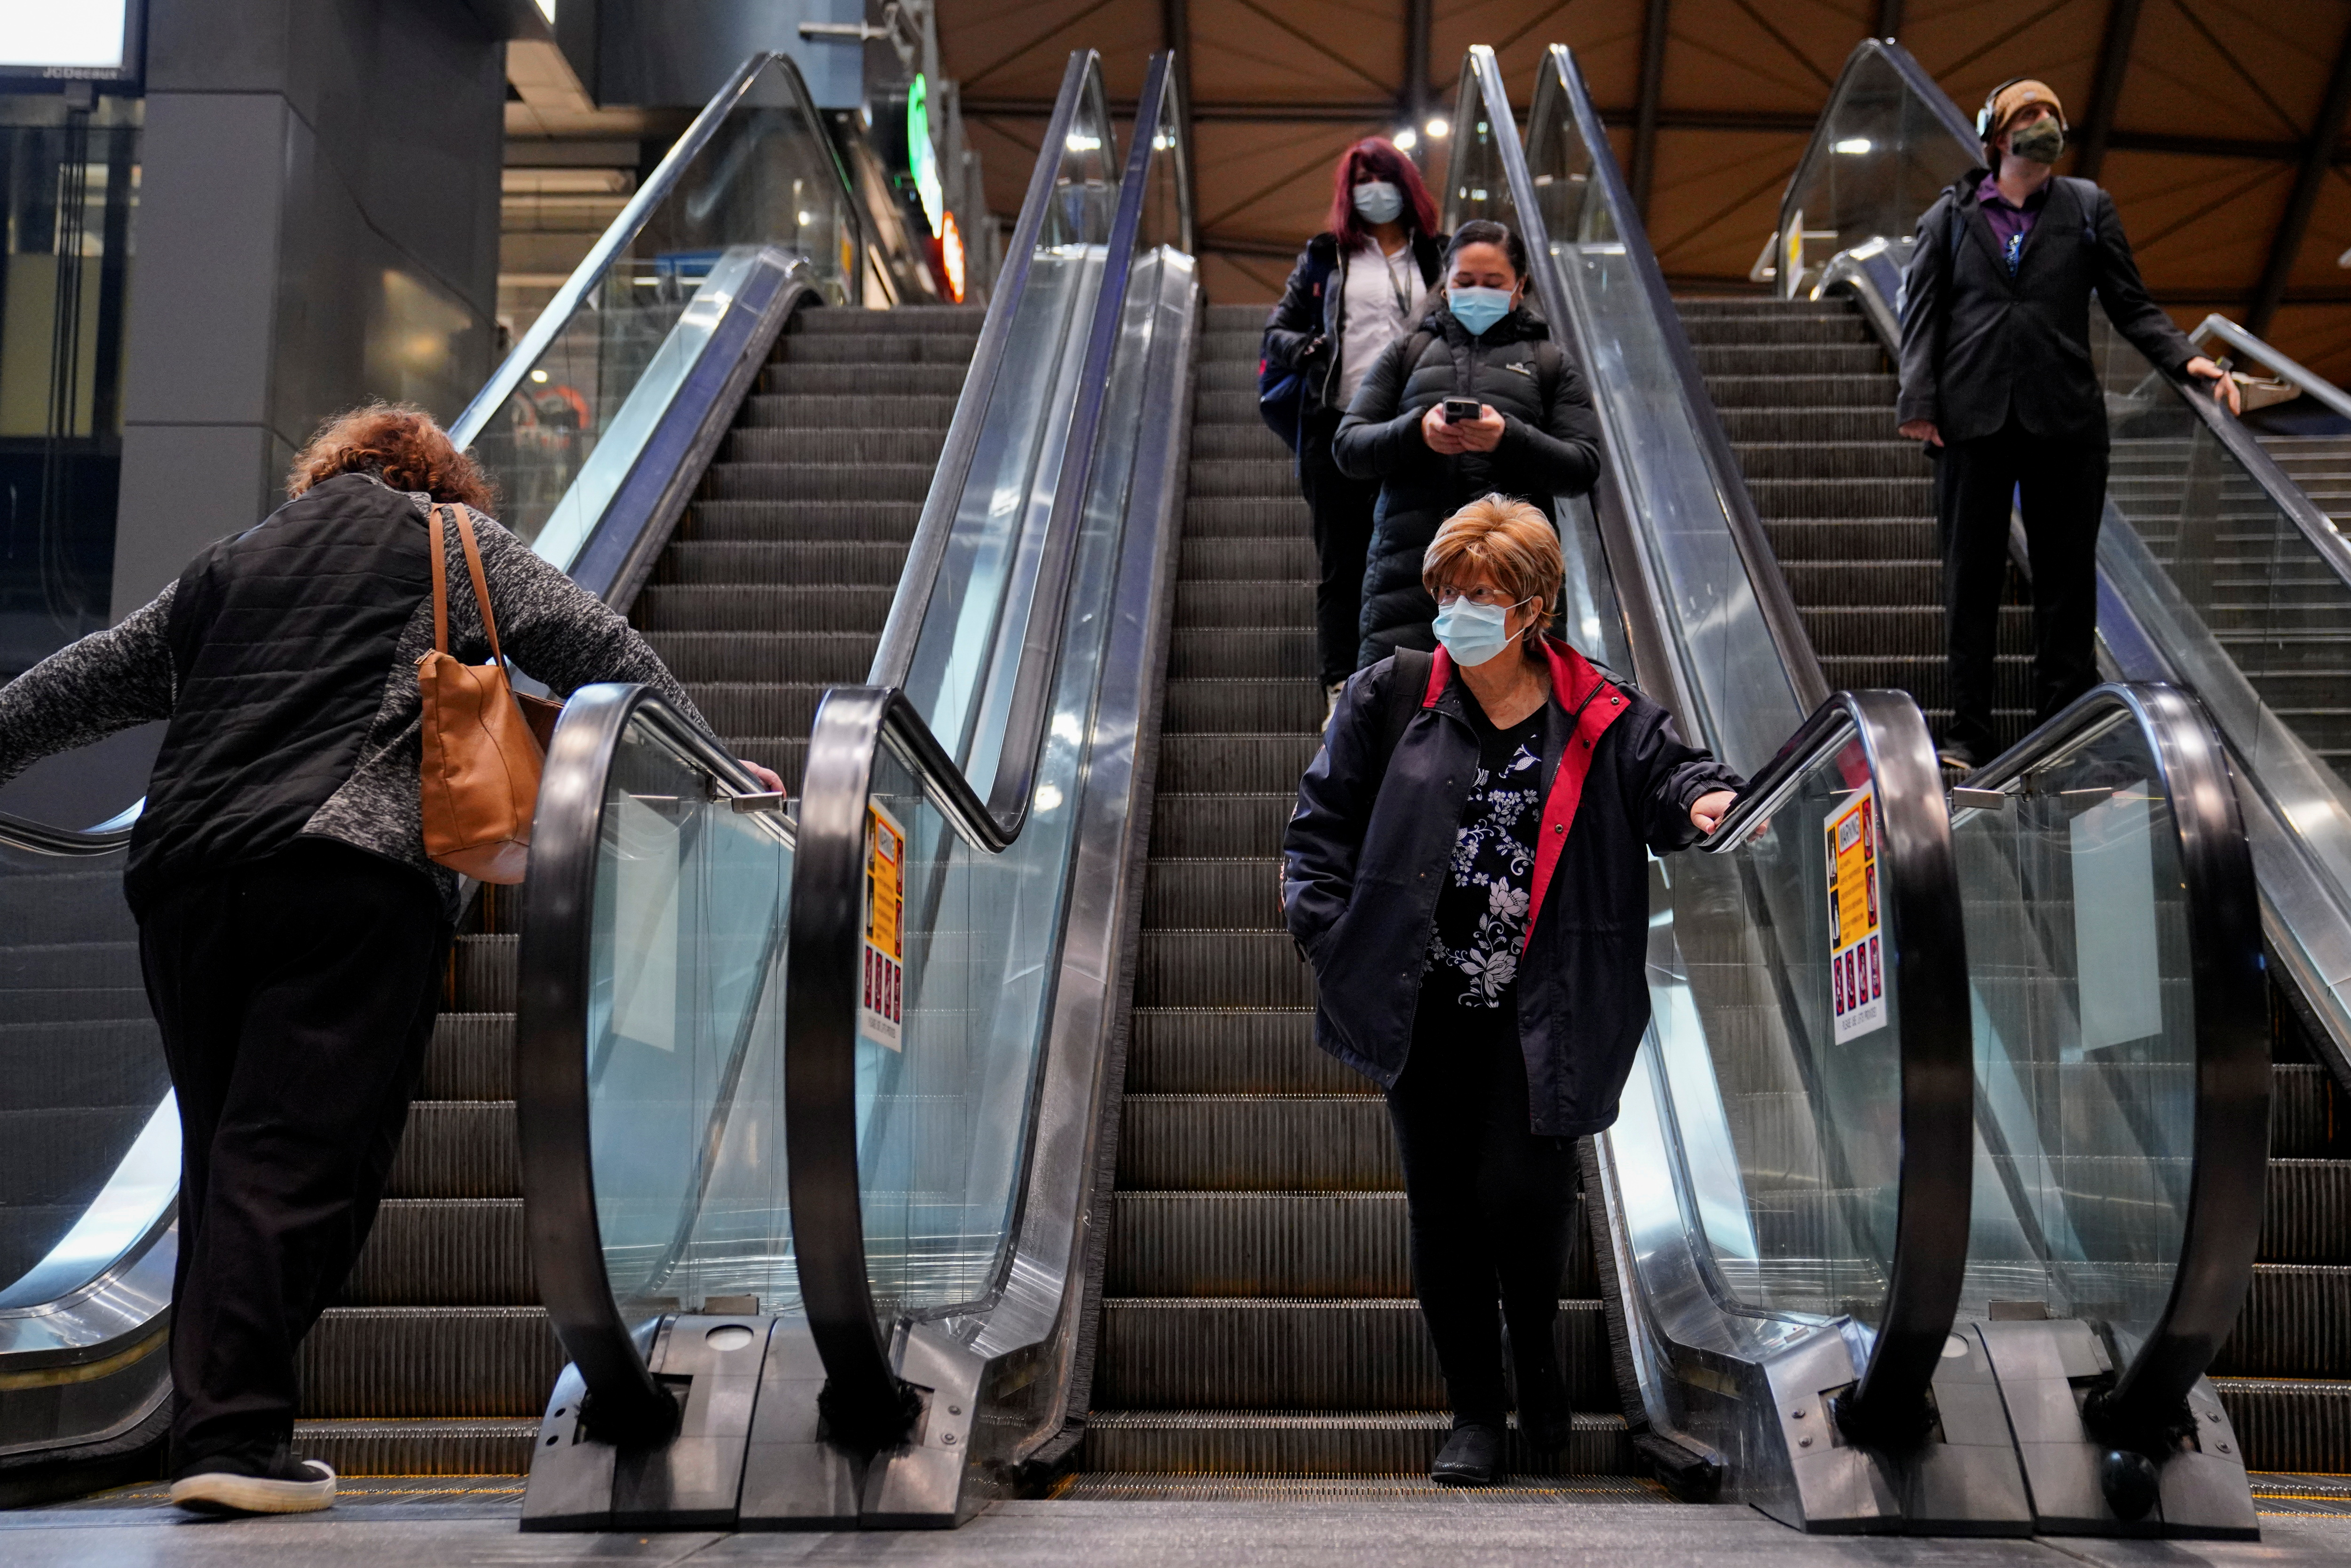 Morning commuters exit Southern Cross Station on the first day of eased coronavirus disease (COVID-19) restrictions for the state of Victoria following an extended lockdown in Melbourne, Australia, June 11, 2021.  REUTERS/Sandra Sanders